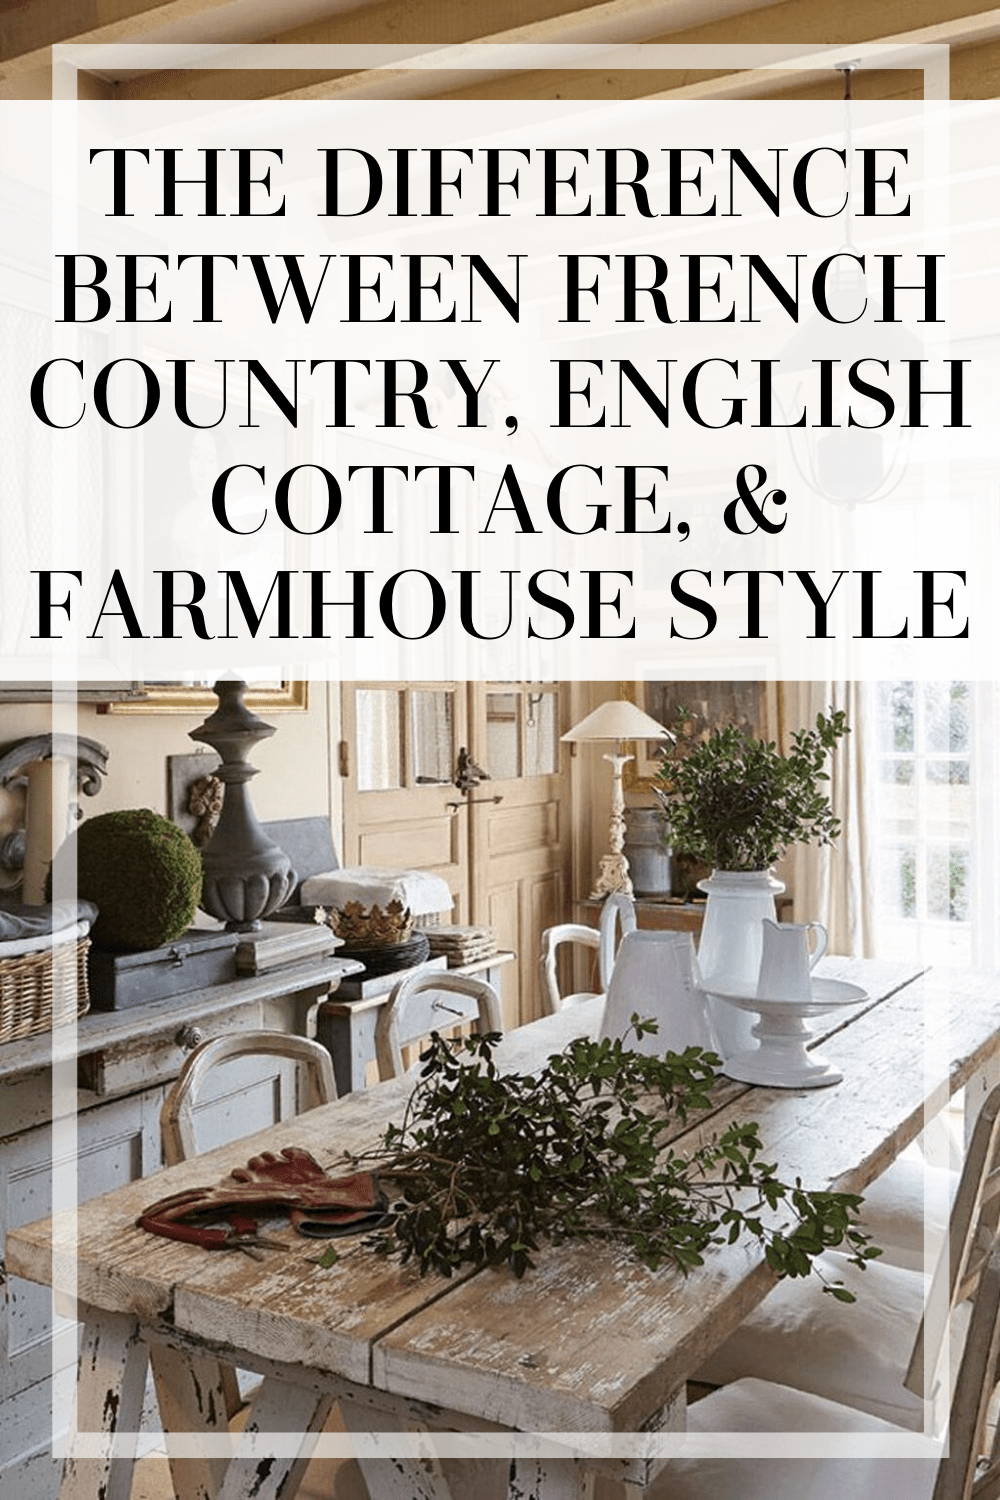 Photo of What is French Country Style? | The Difference Between French Country, English Cottage, & Farmhouse